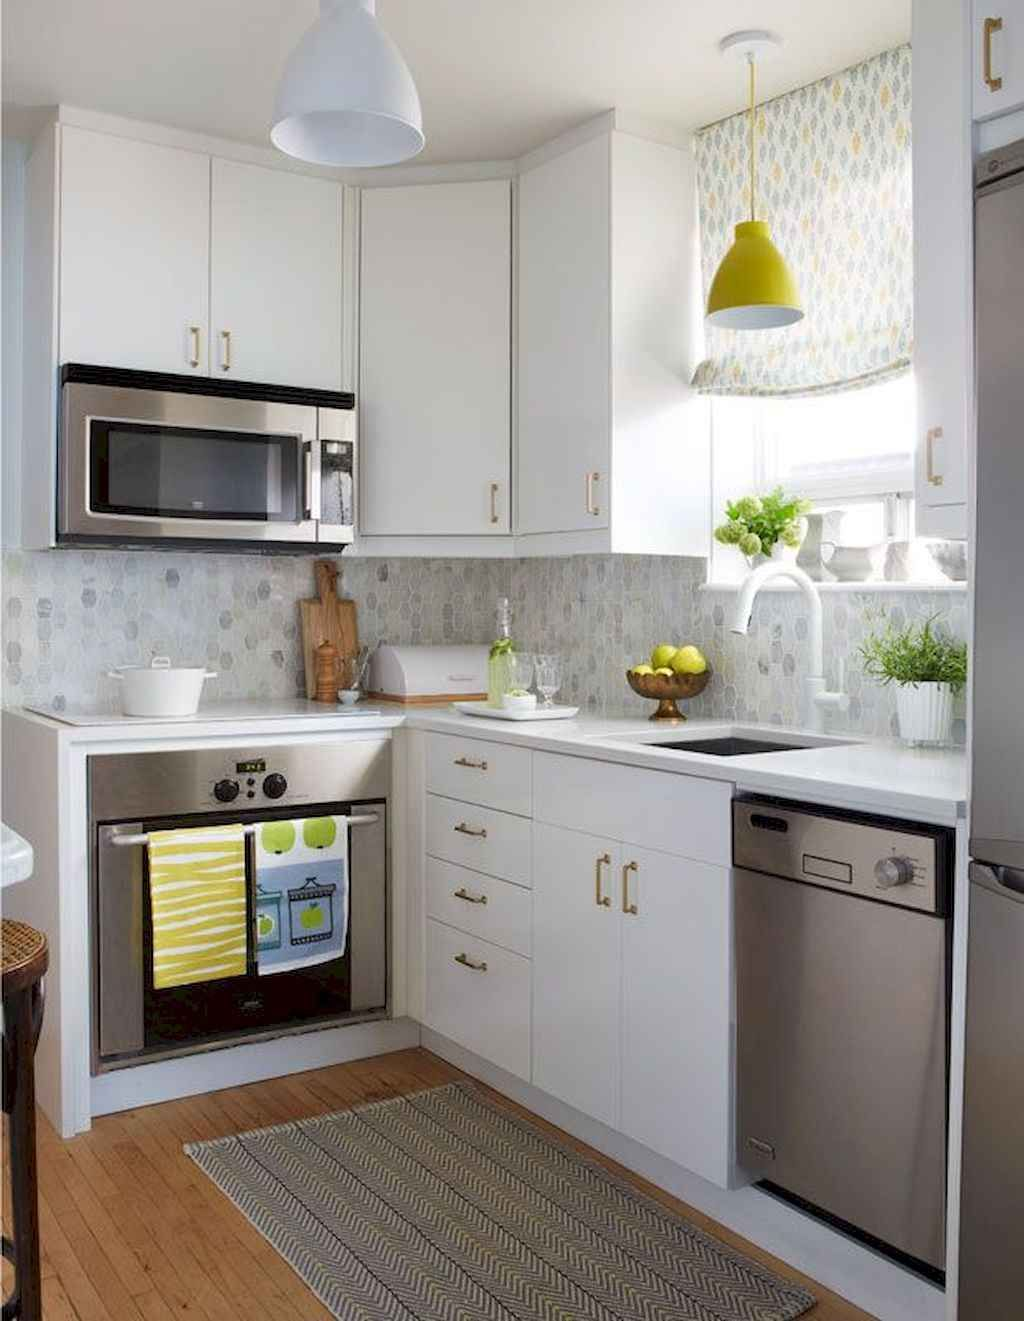 Pin on Kitchen Remodel and Design